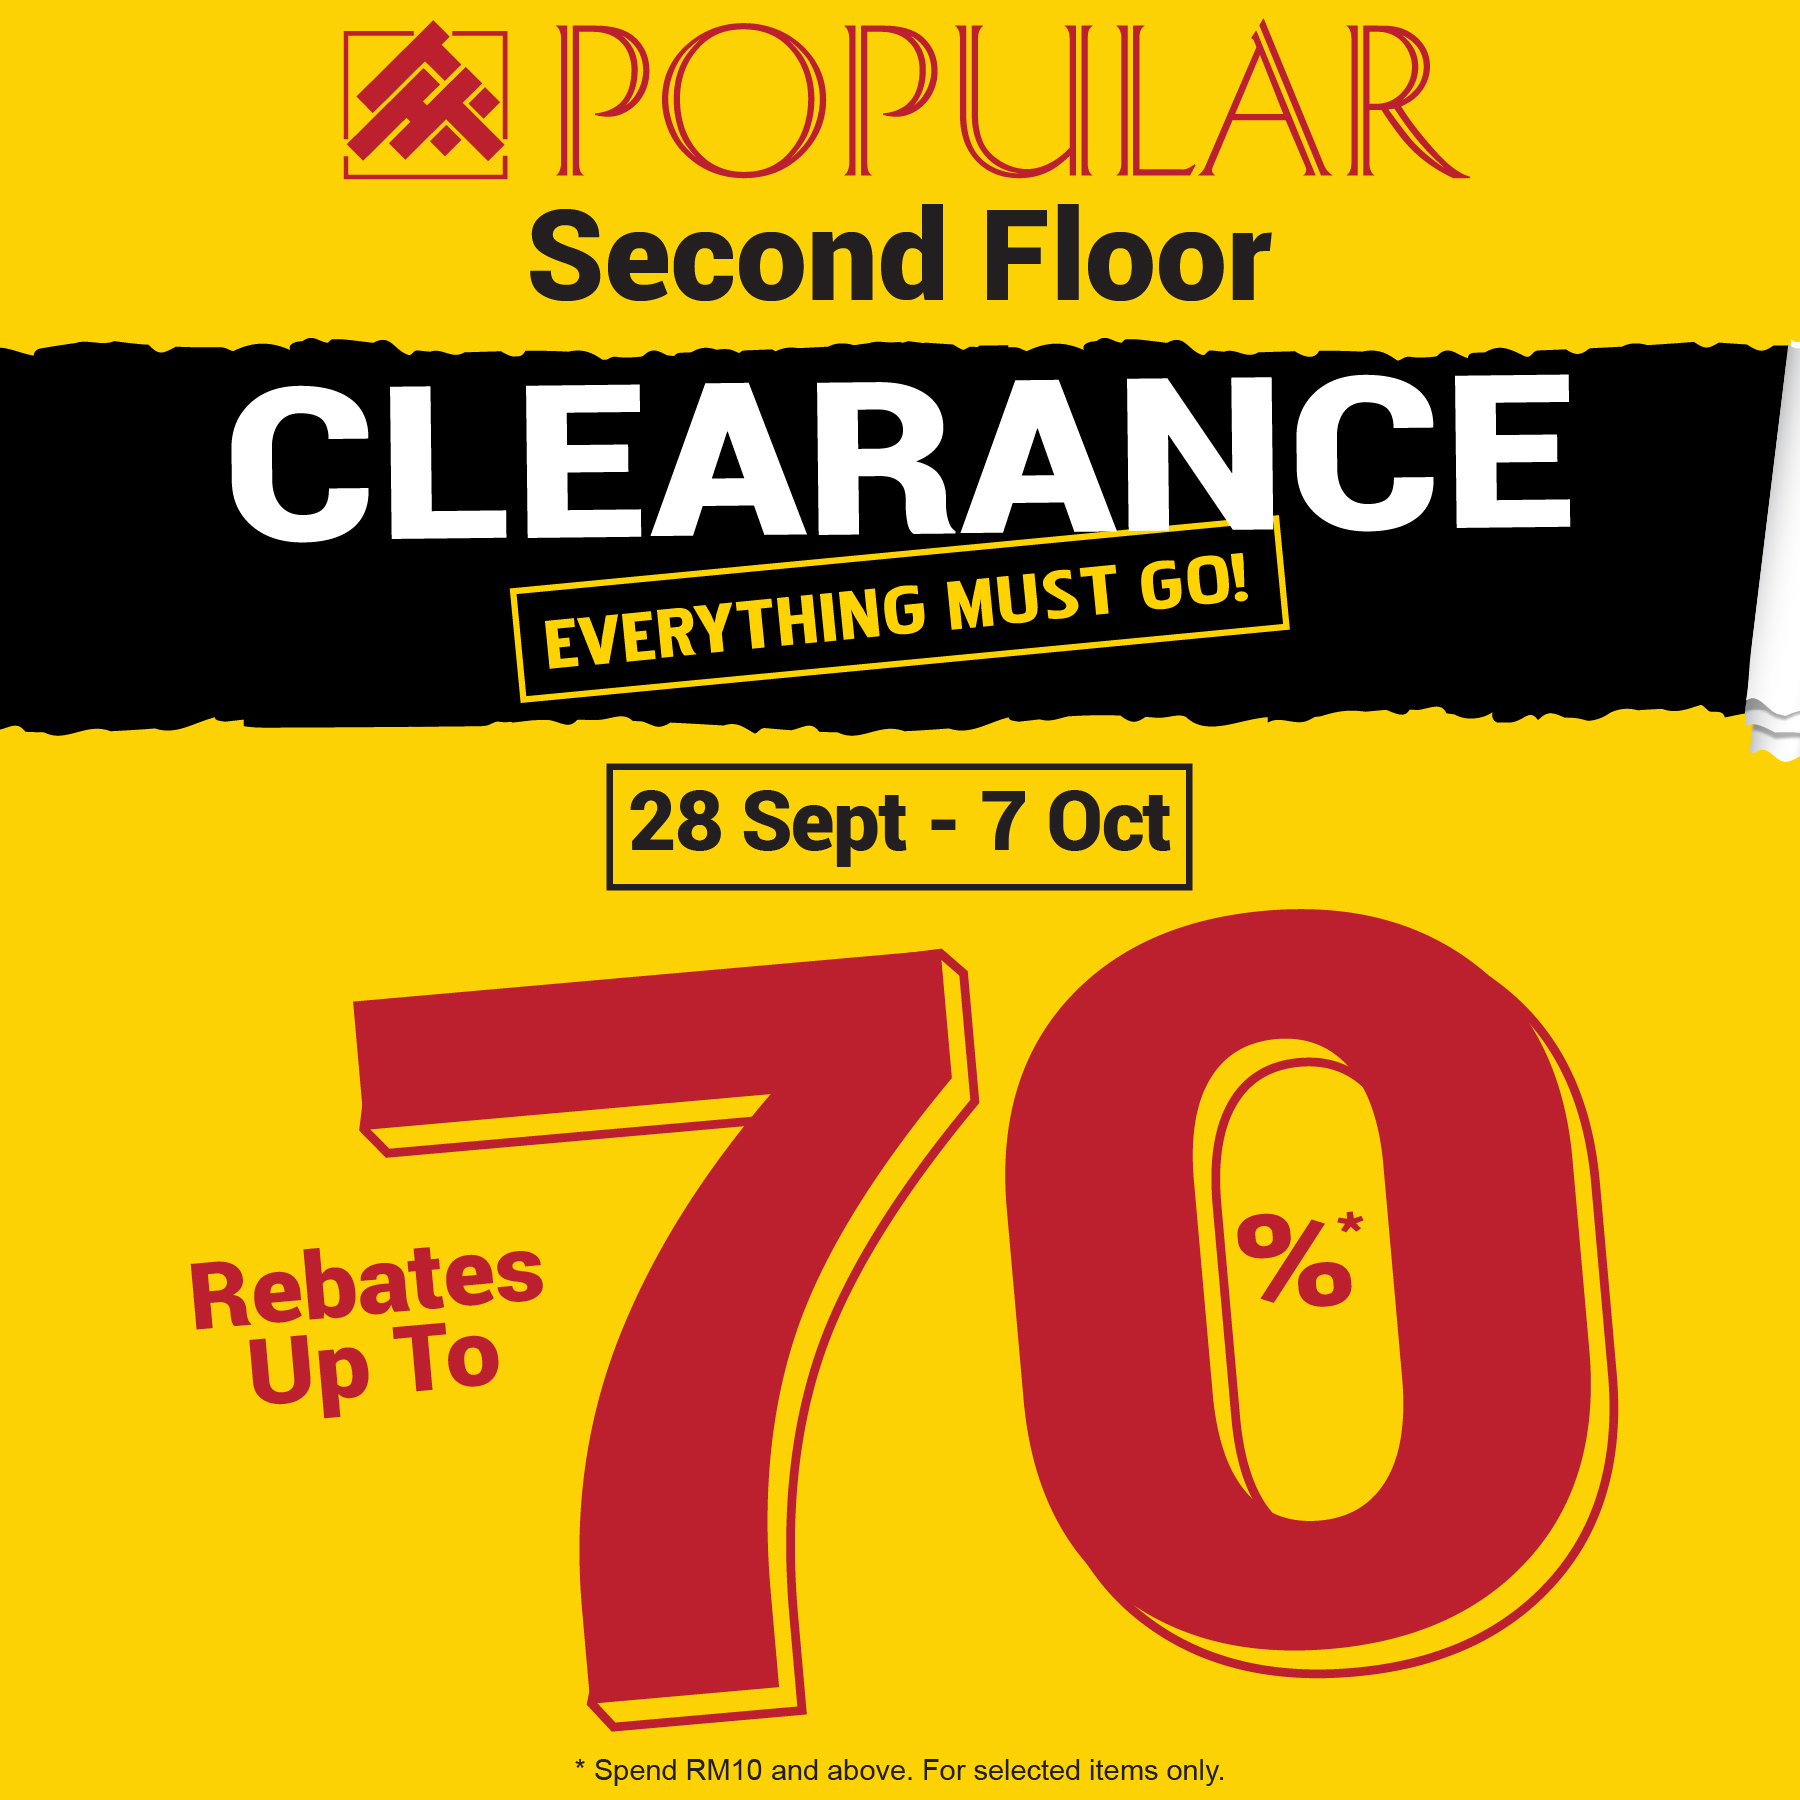 POPULAR CLEARANCE SALE (28 SEPT – 7 OCT 2018